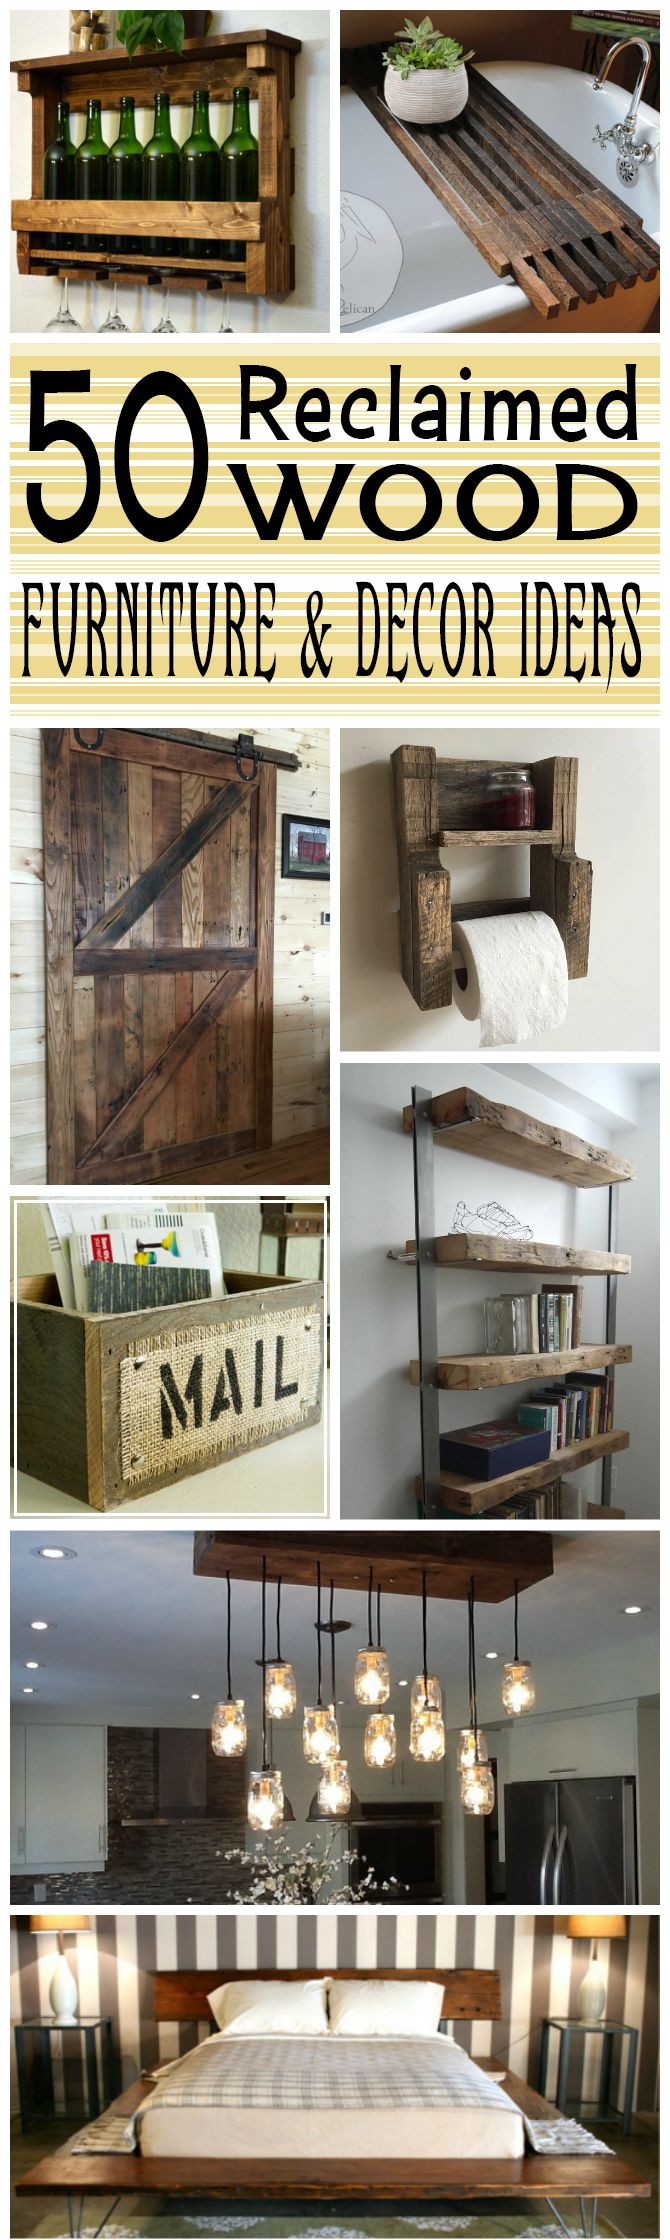 Reclaimed Wood Furniture And Decor #woodworking